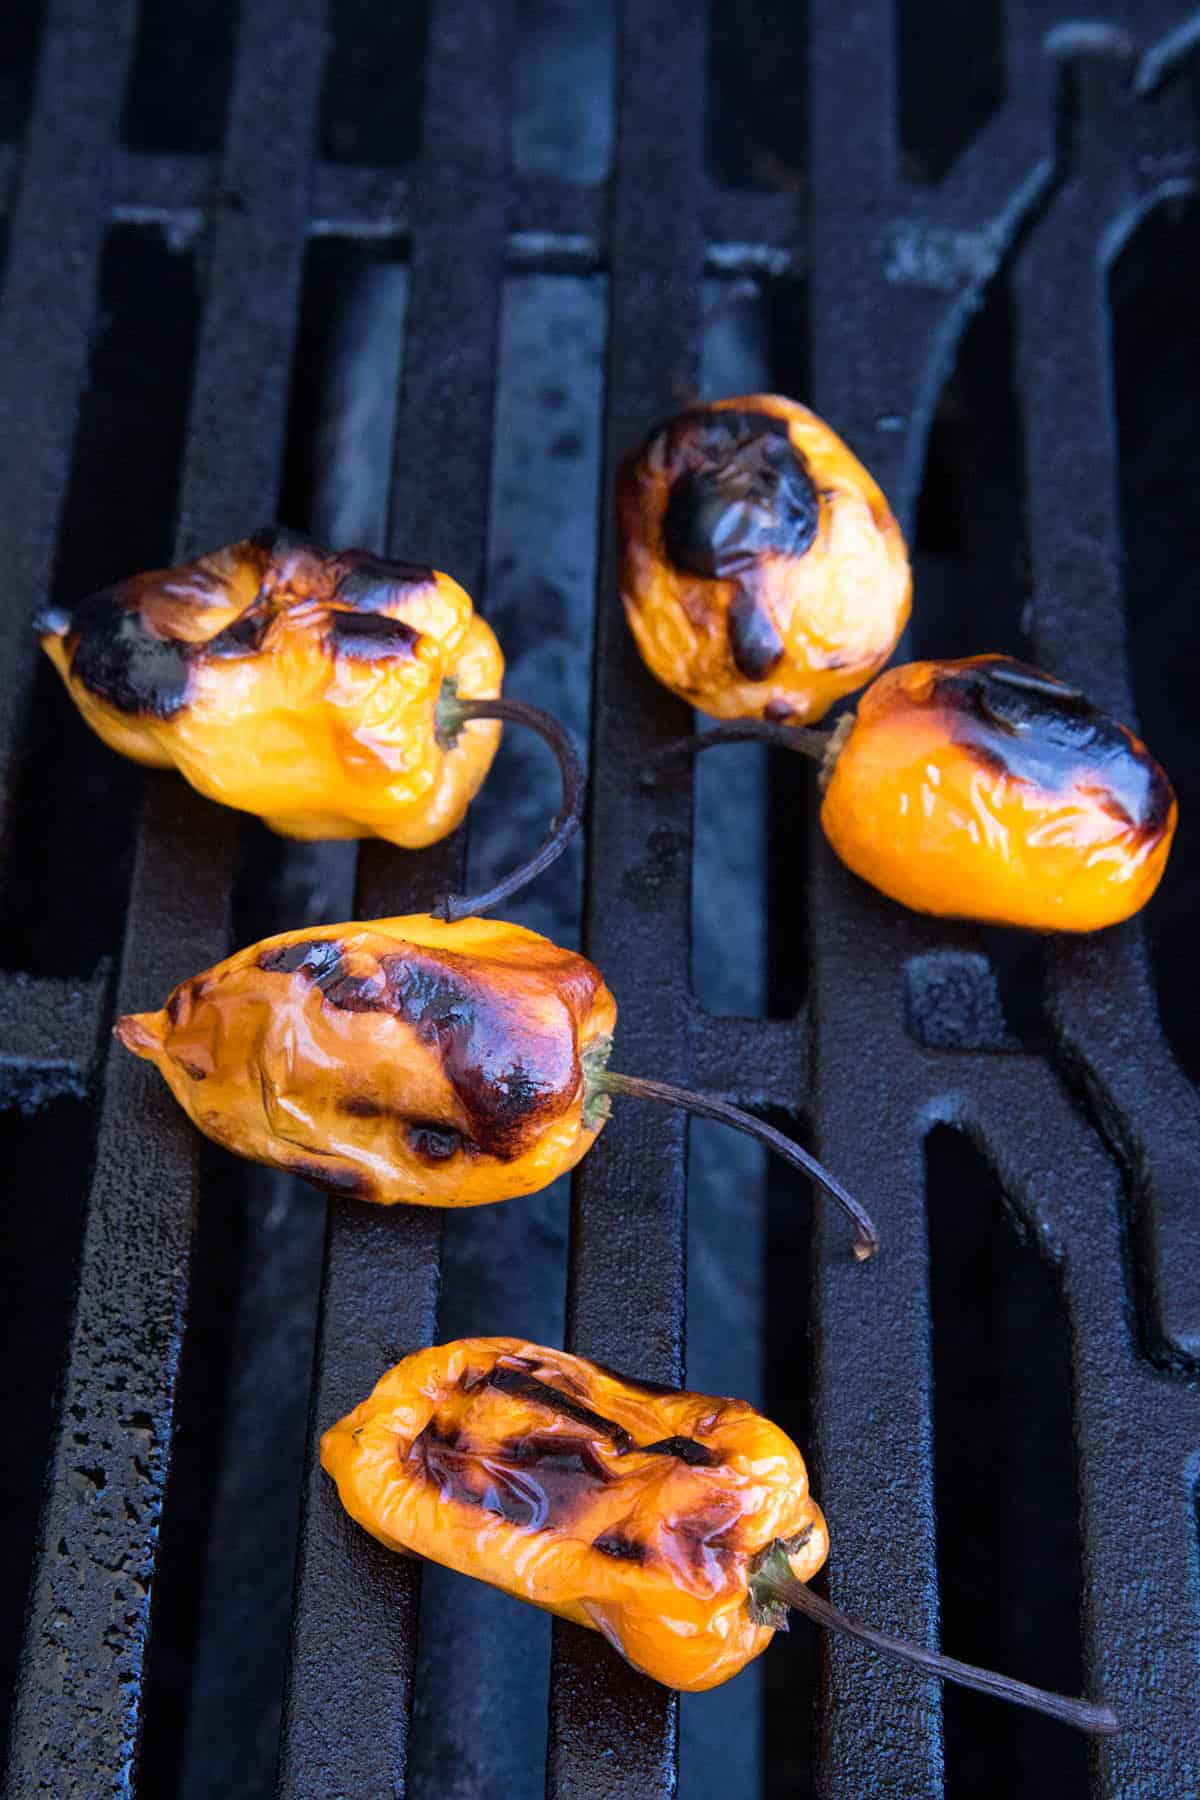 Charring habanero peppers on the grill